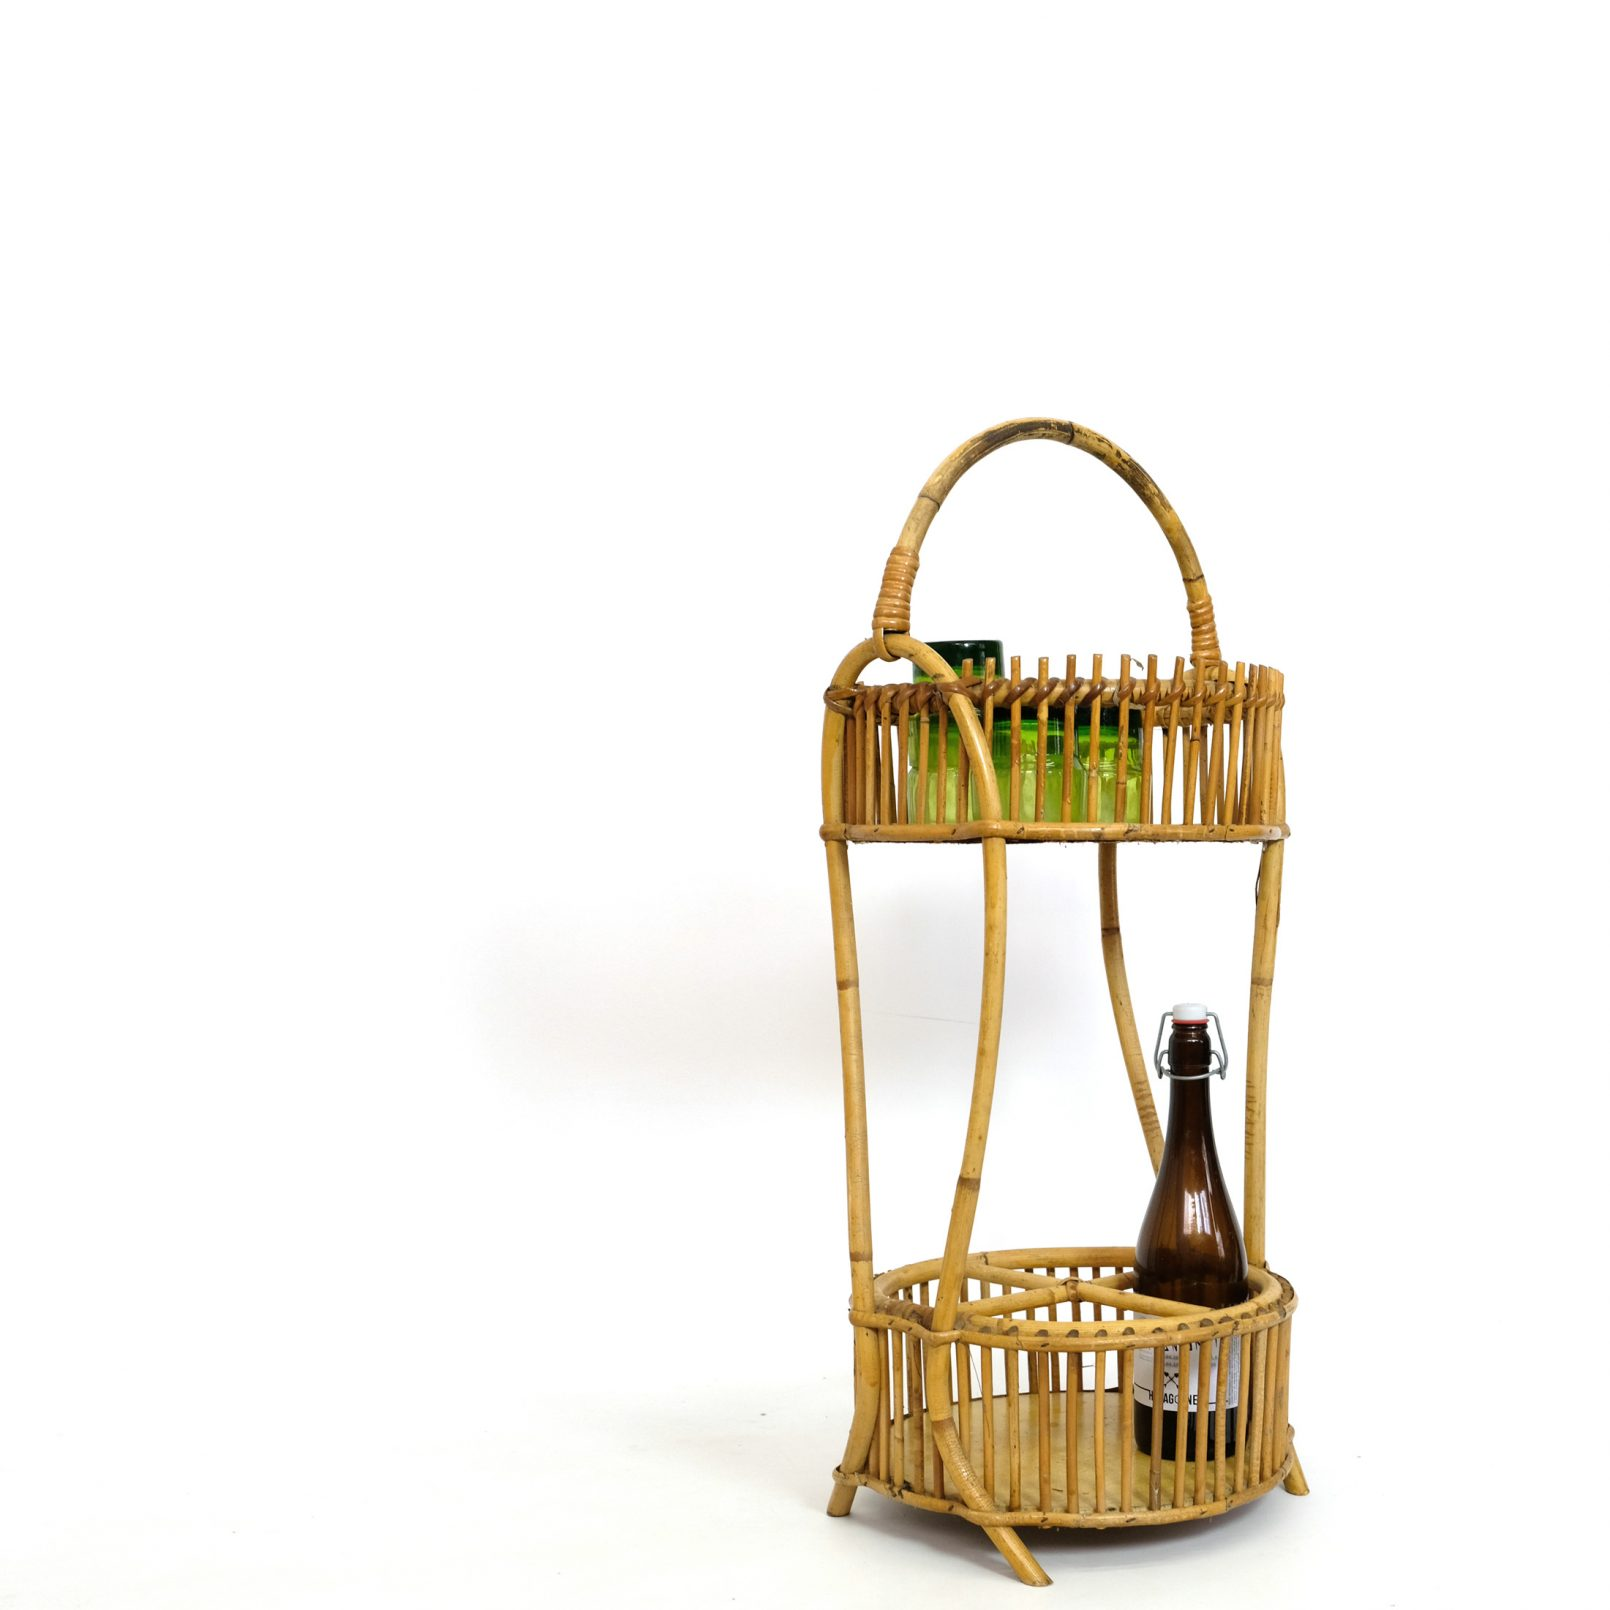 Rattan mobile bar from the 1960s-1970s.